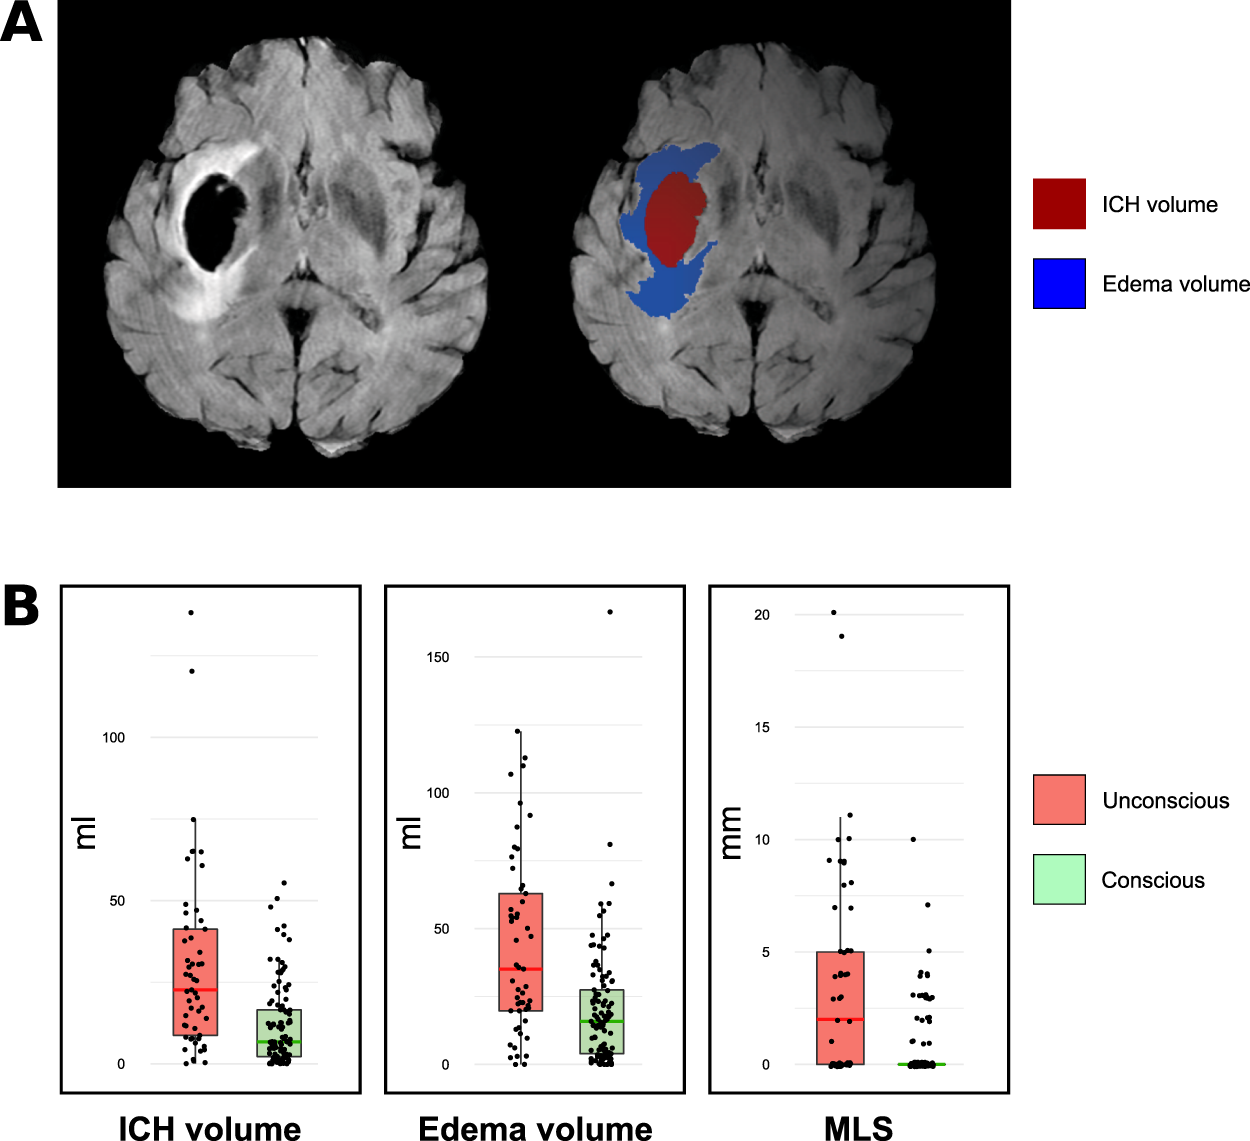 Deep structural brain lesions associated with consciousness